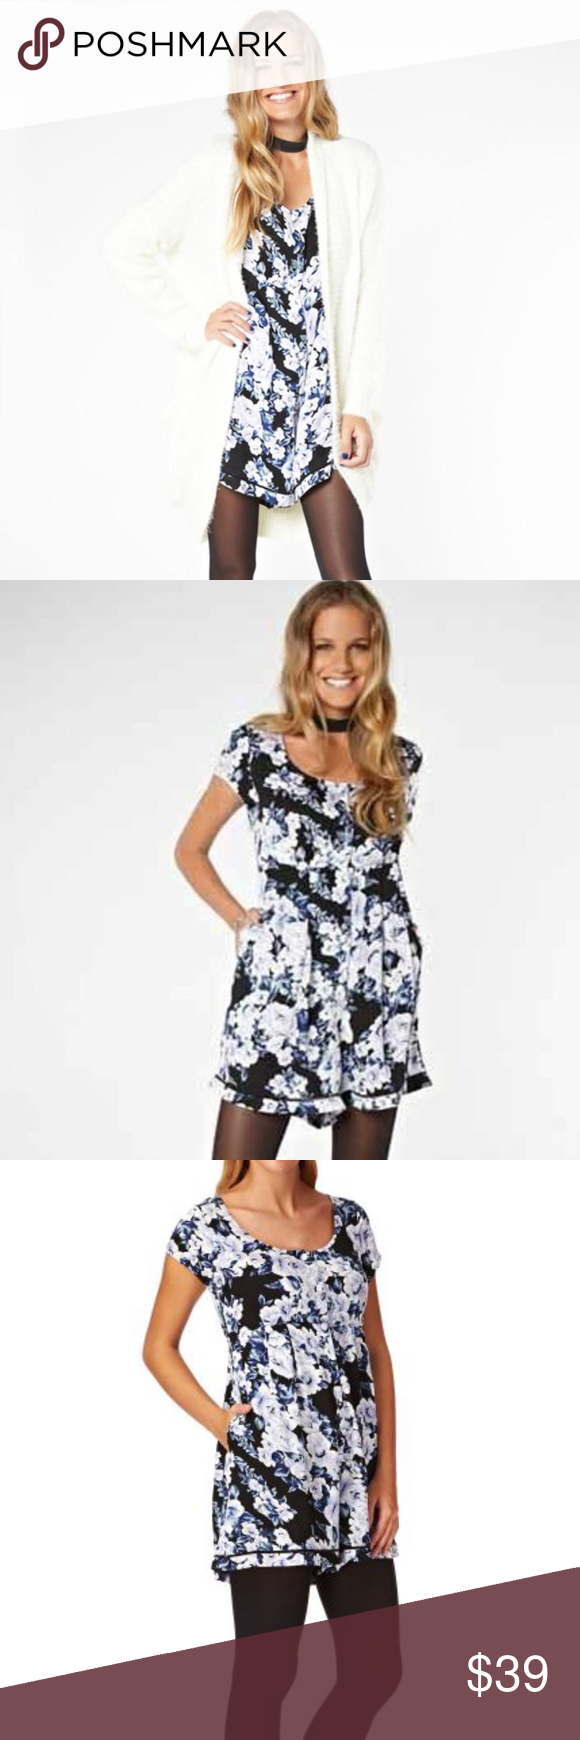 ab47a5b3dd4 Mink Pink Blue black Floral Romper w  pockets XS Website description  The  Moonlit Fountain Playsuit by MinkPink features a floral pattern throughout  and ...